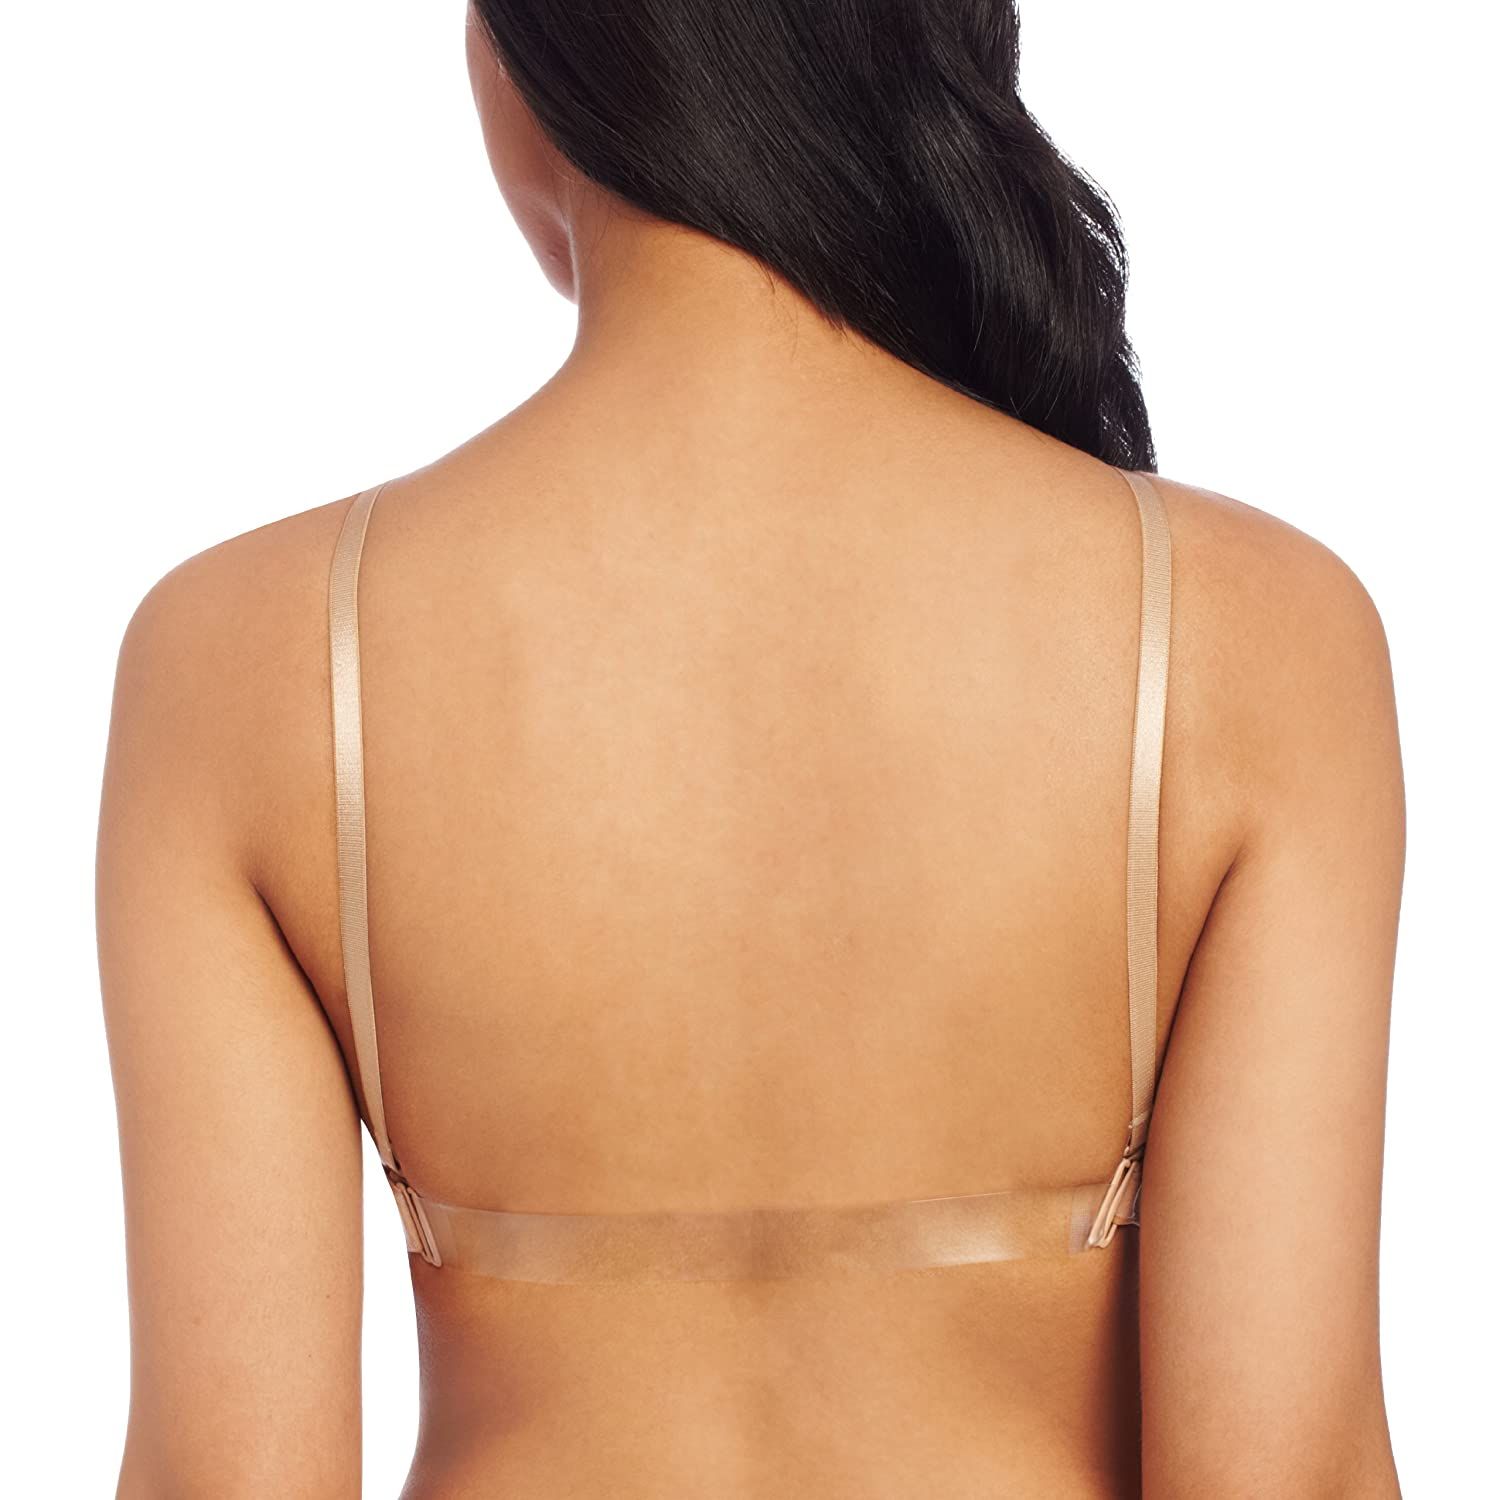 Shop for clear back strap bra online at Target. Free shipping on purchases over $35 and save 5% every day with your Target REDcard.